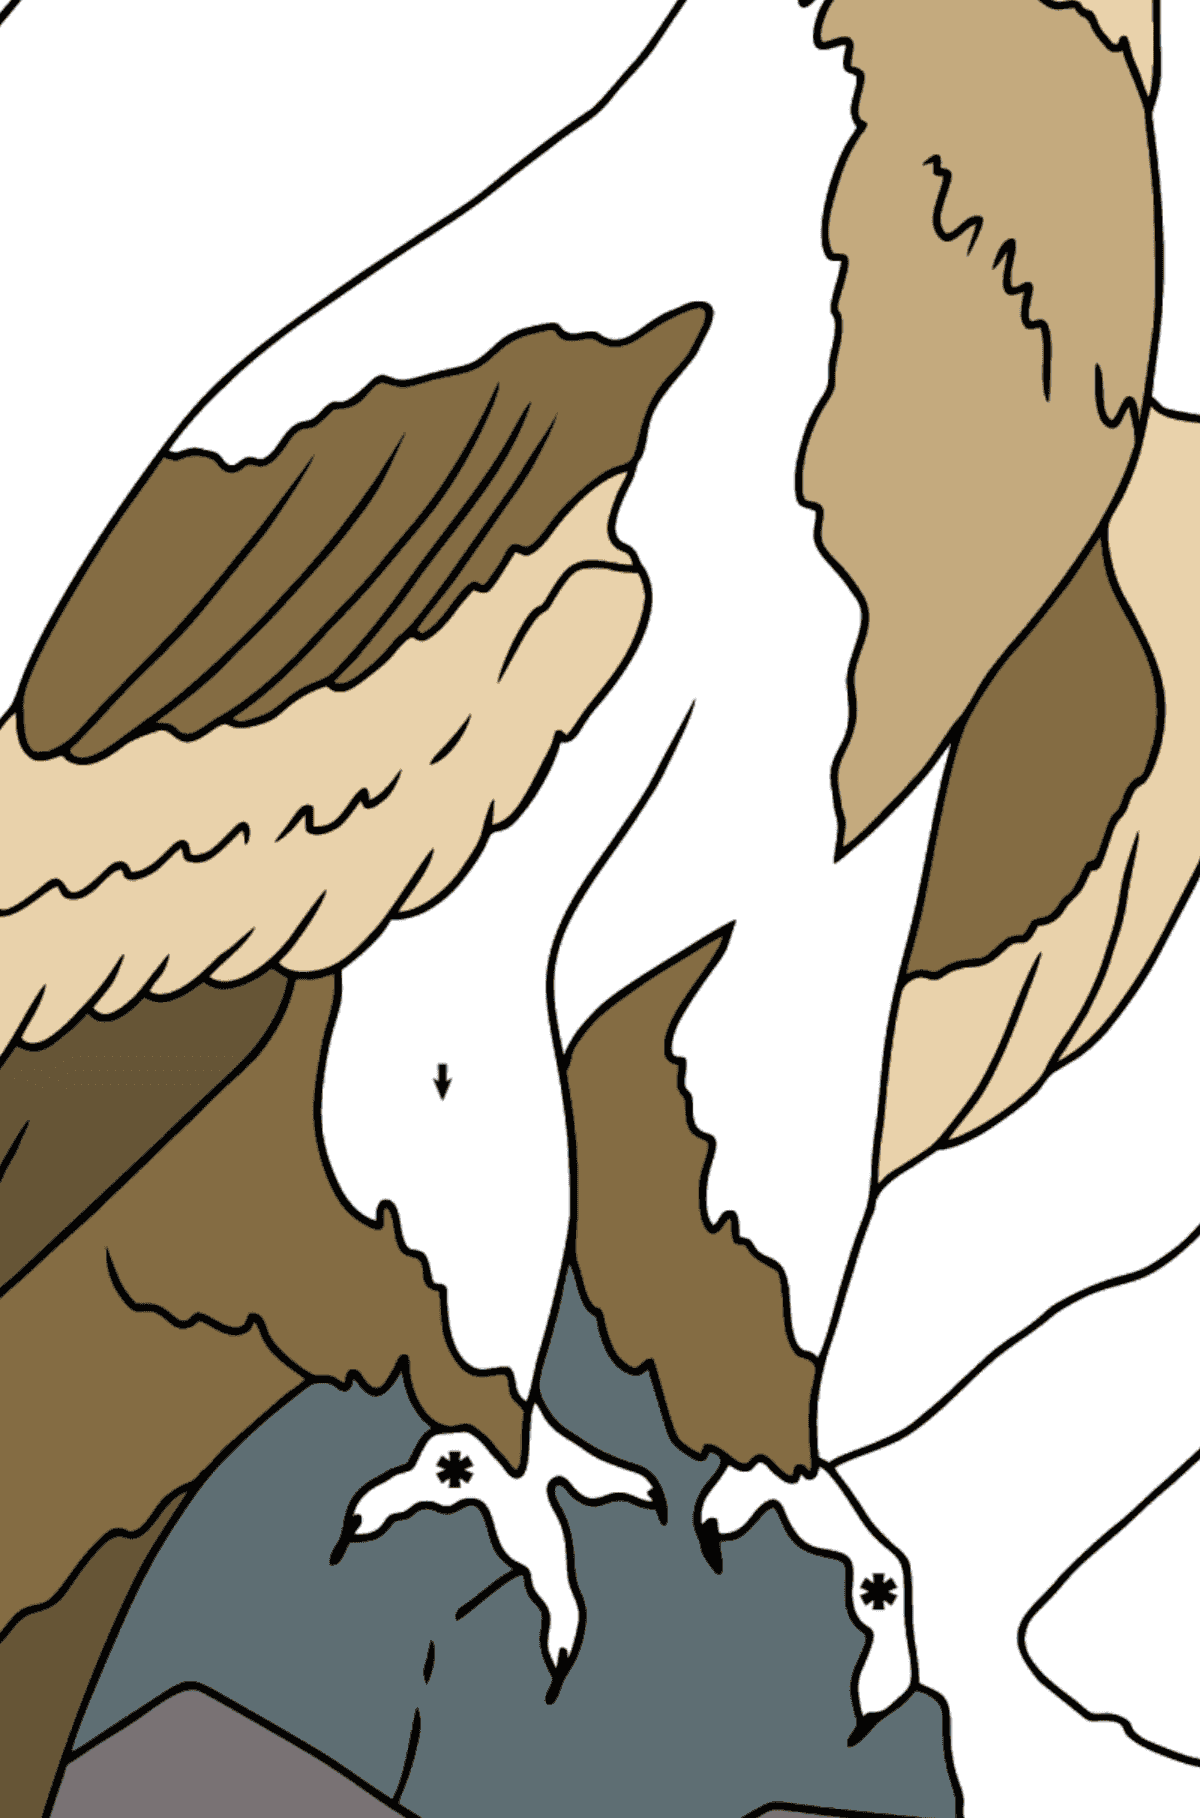 Coloring Page - An Alpine Eagle - Coloring by Symbols for Kids